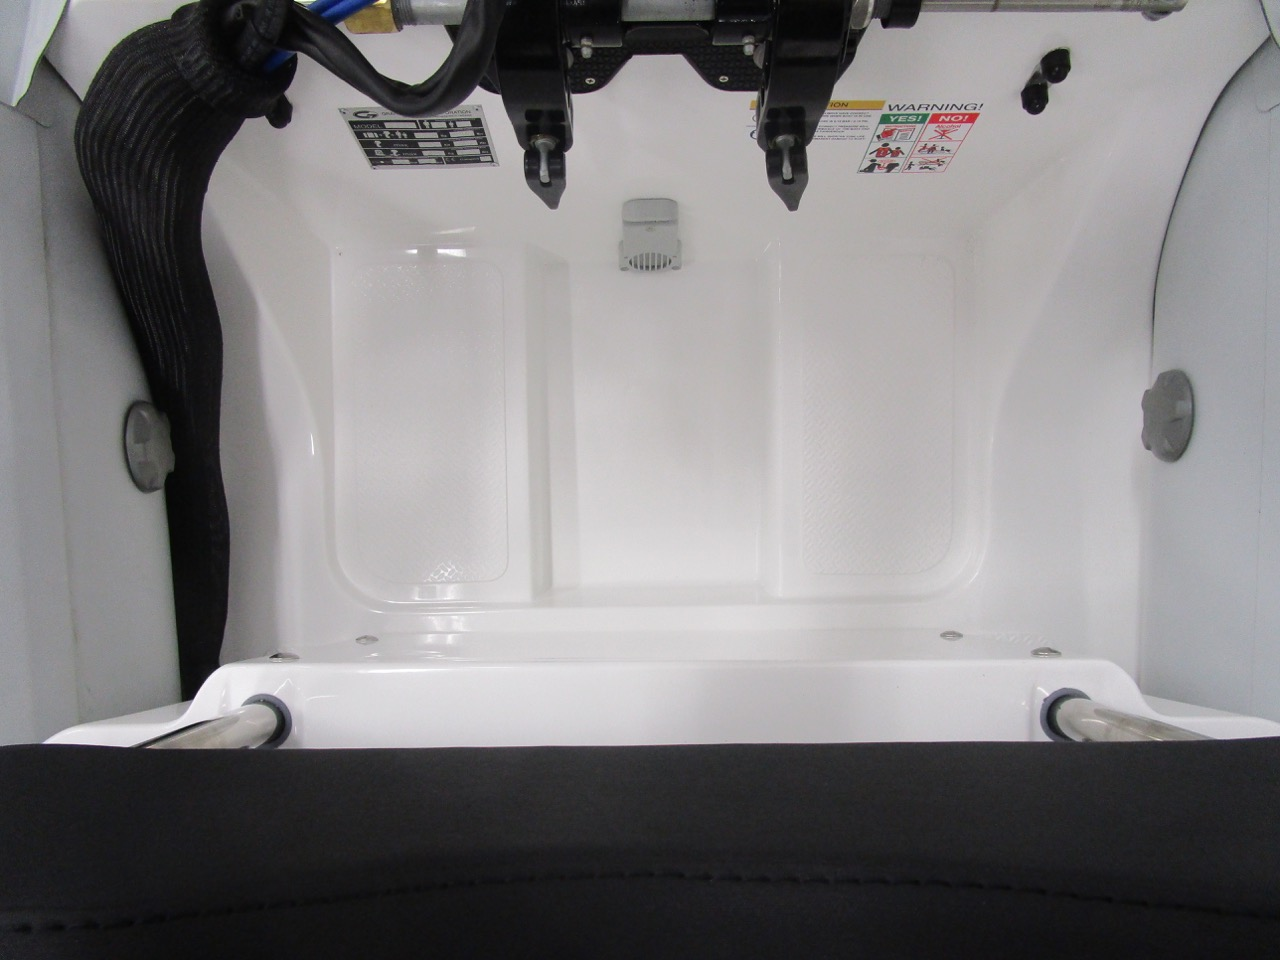 GRAND S330 RIB tender stern sump and self draining deck valve